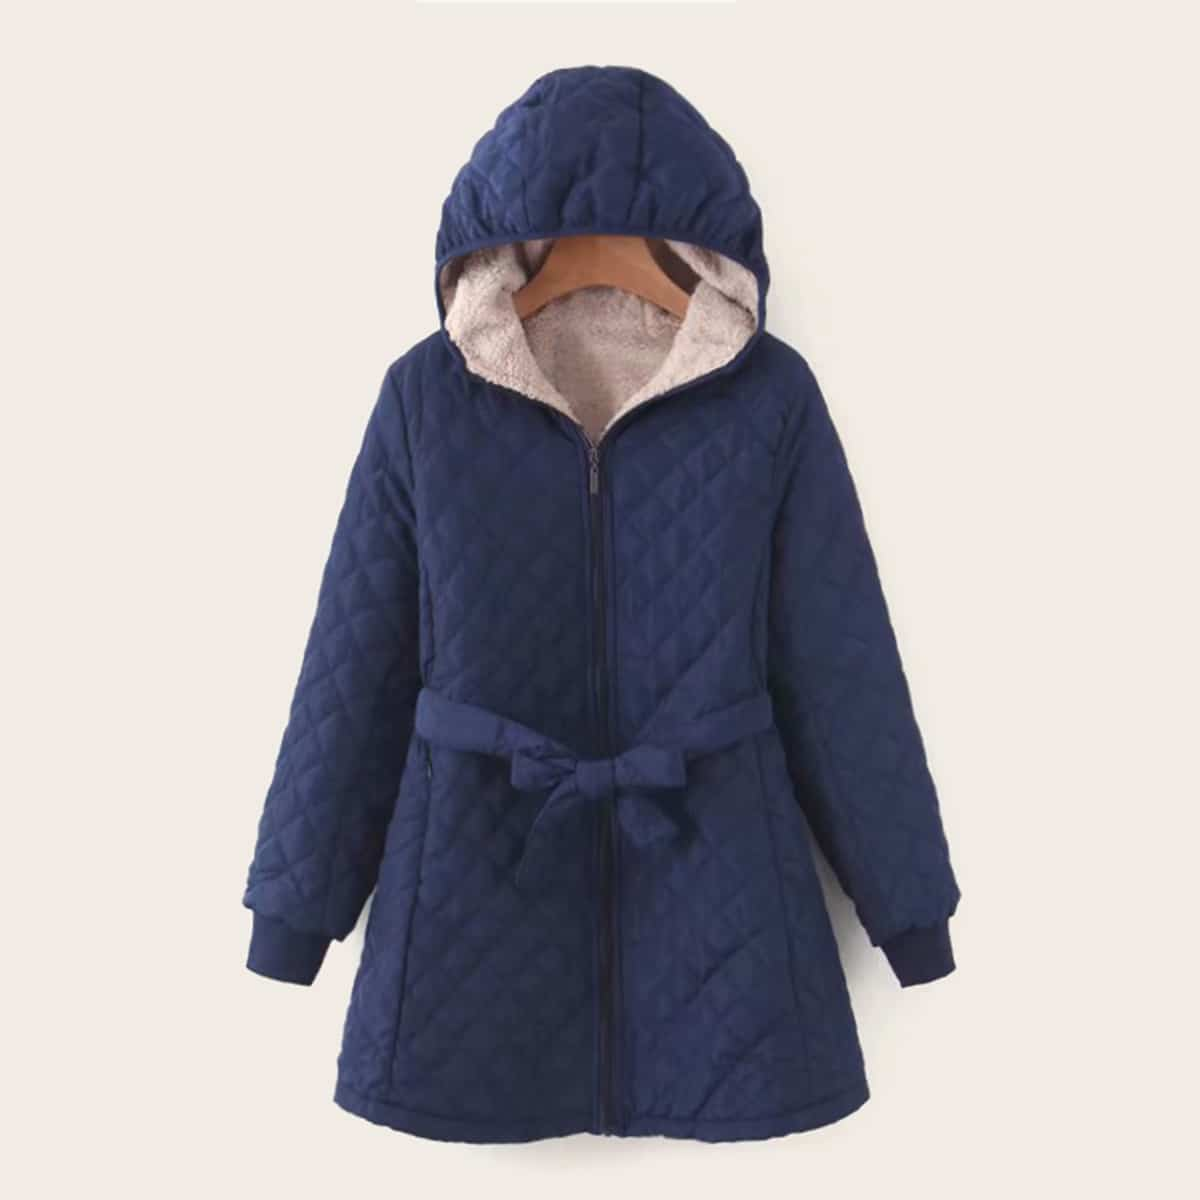 Zip Up Teddy Lined Belted Hooded Puffer Coat